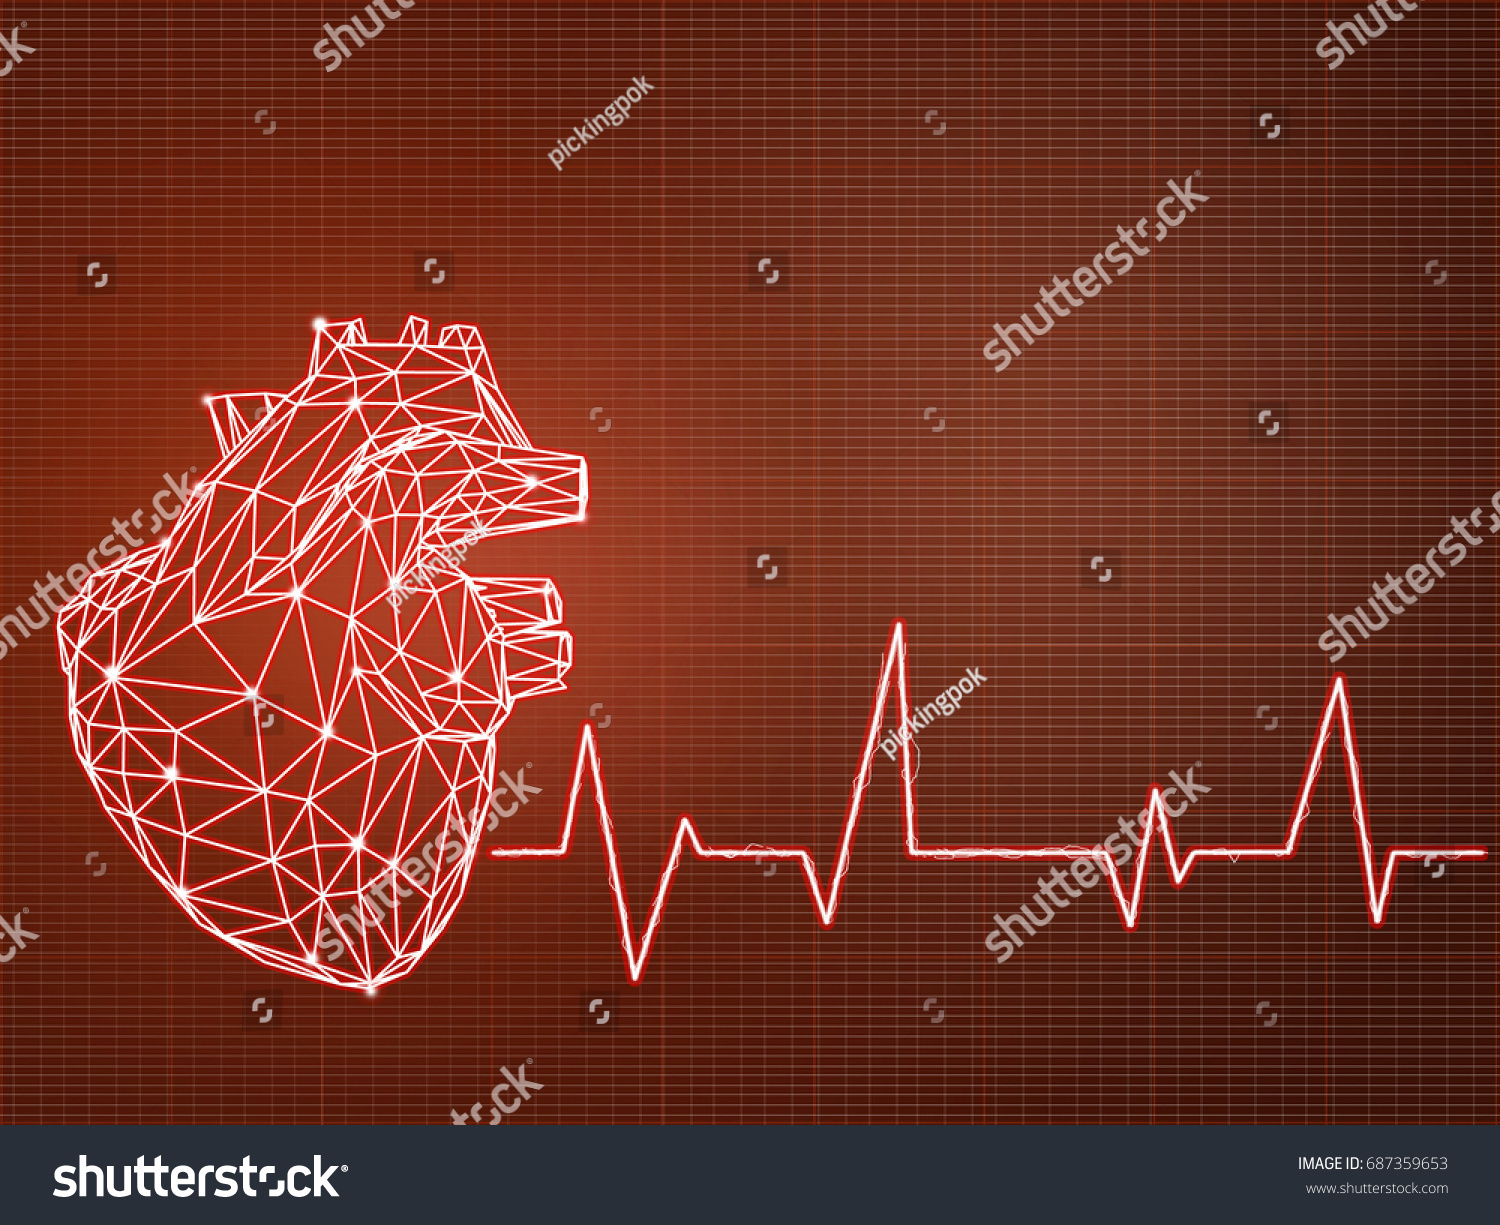 Polygonal Heart Shape Writing By Lines And Dotselectrocardiogram With Symbol